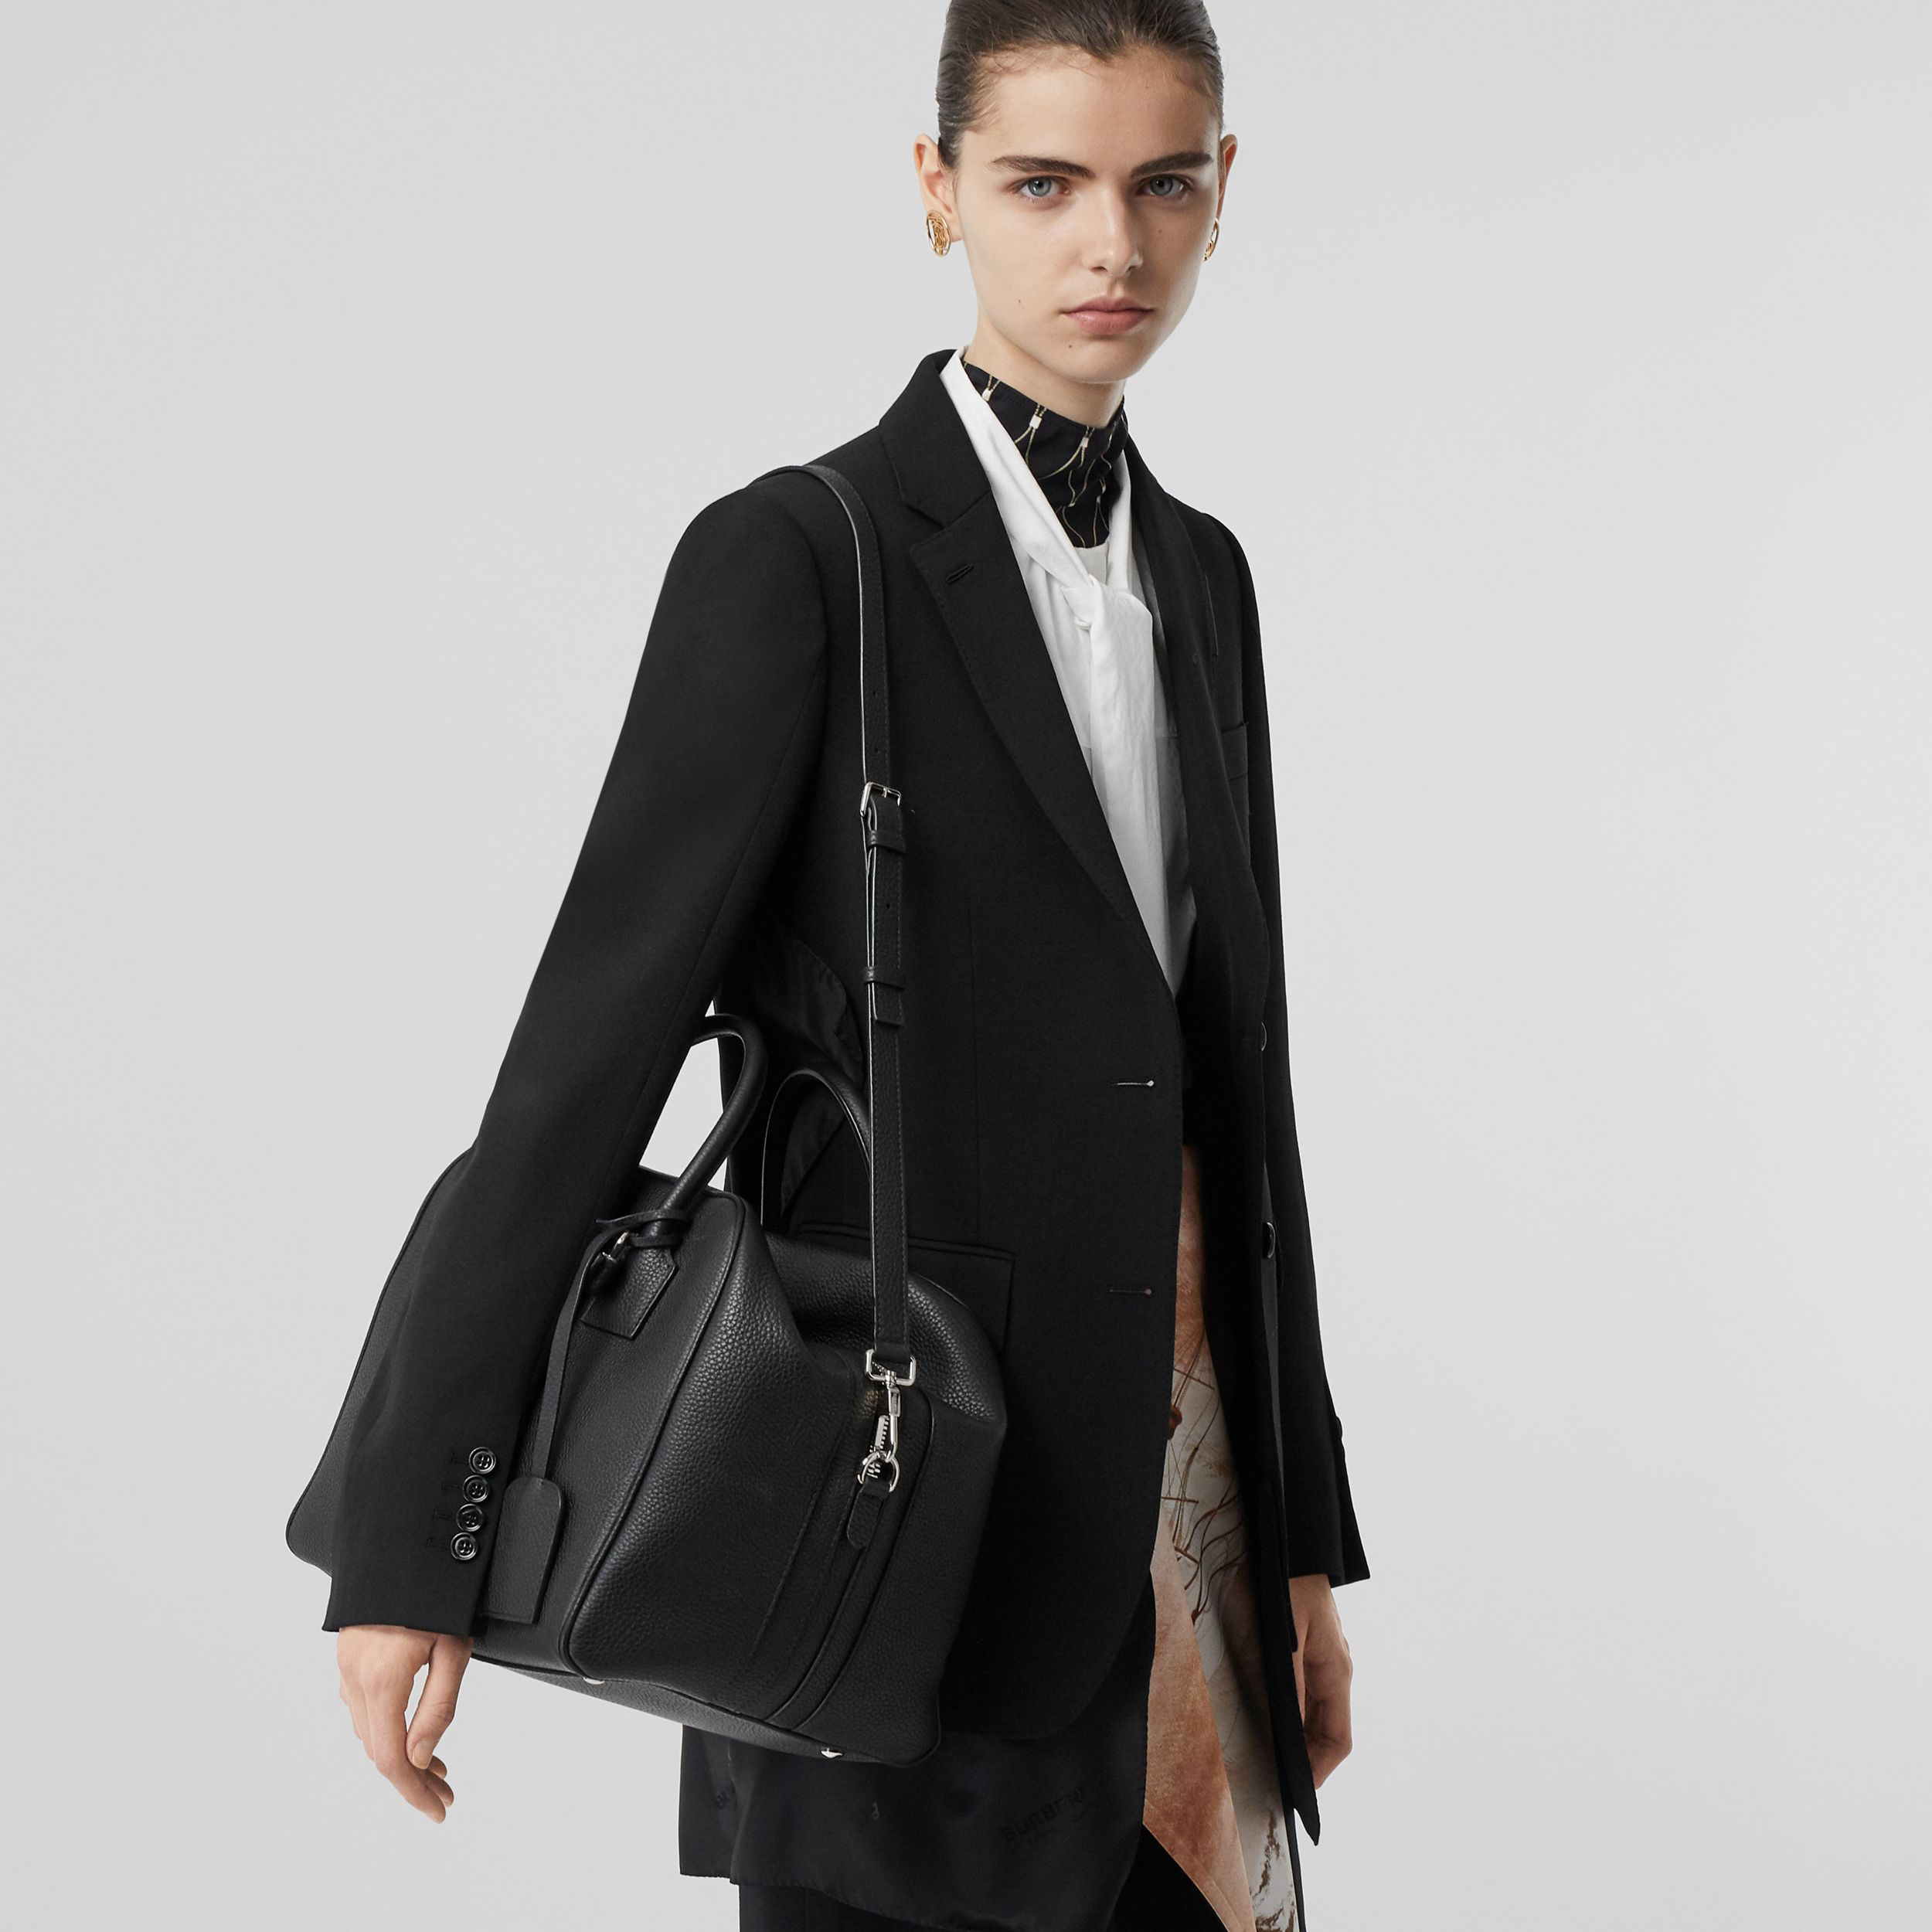 Medium Leather Cube Bag in Black - Women | Burberry - 3